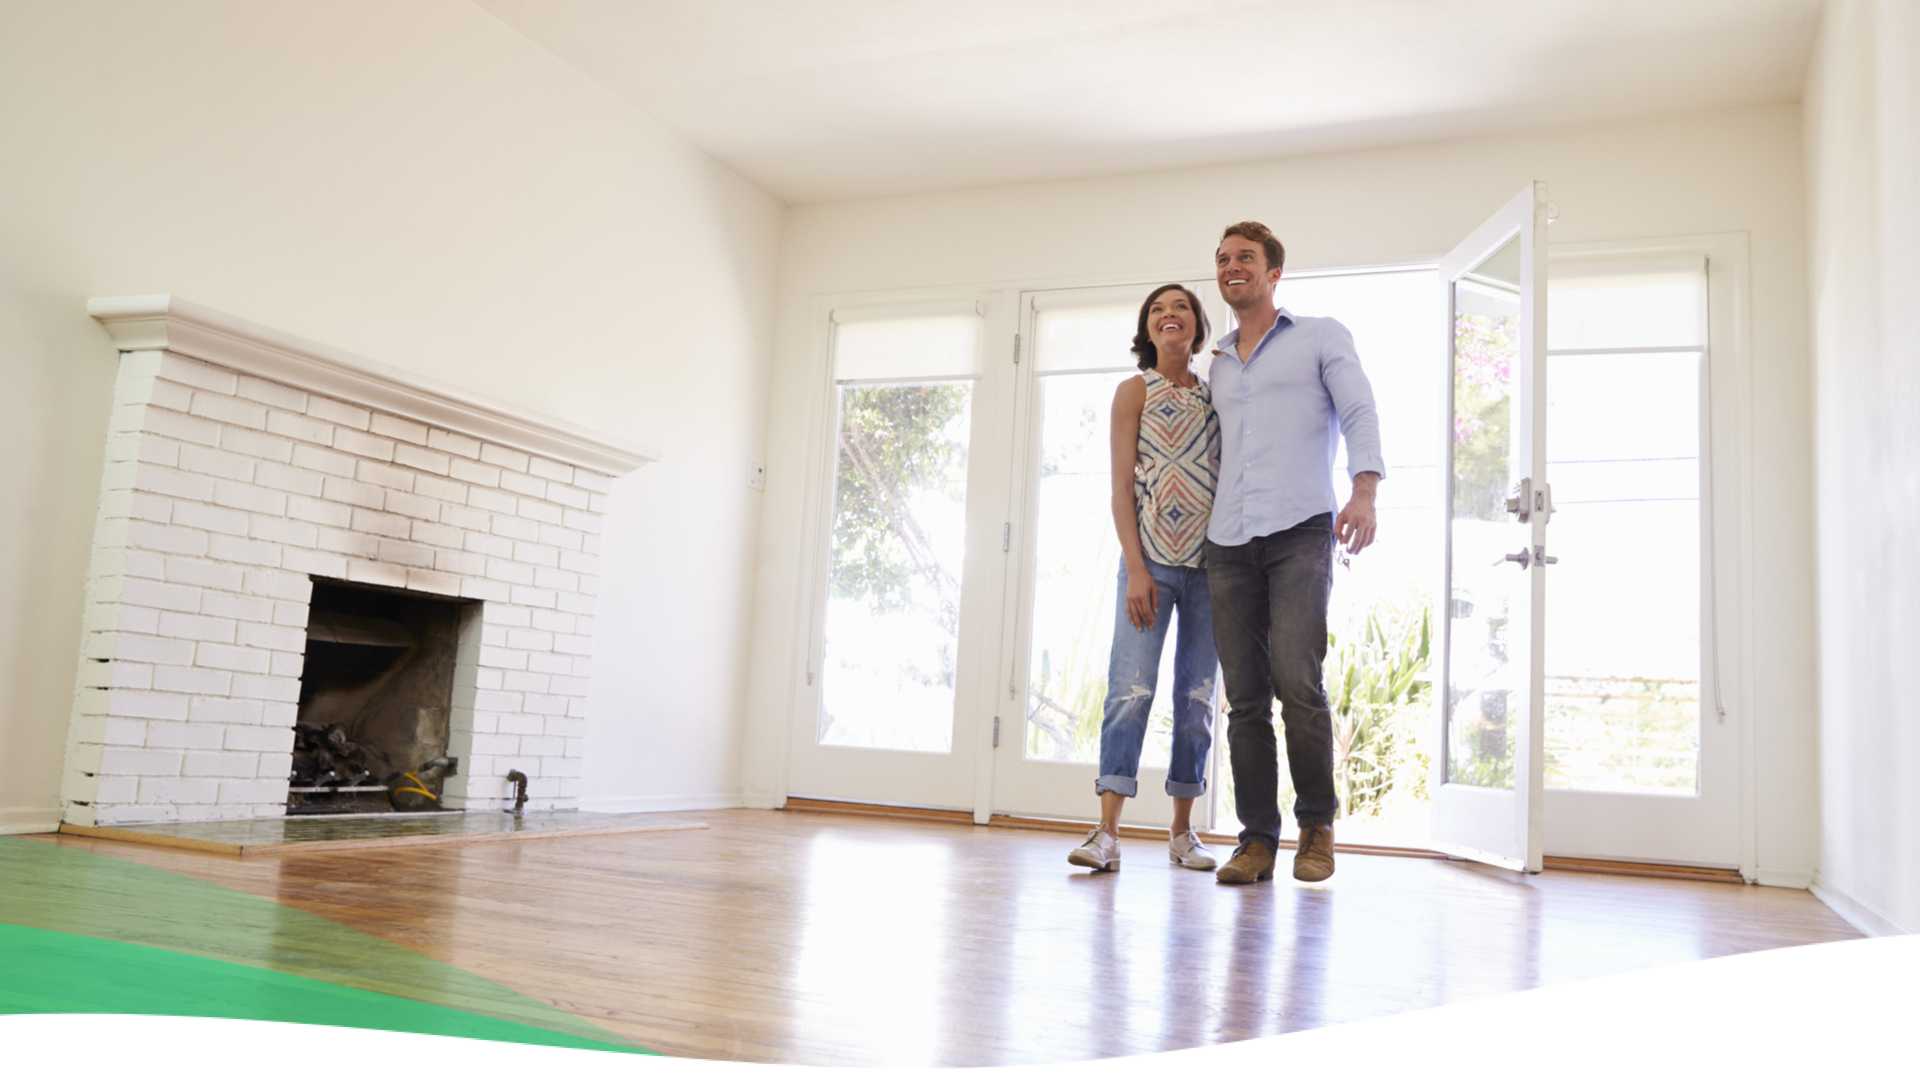 Blog ML The ultimate financial guide to moving in together 08272018